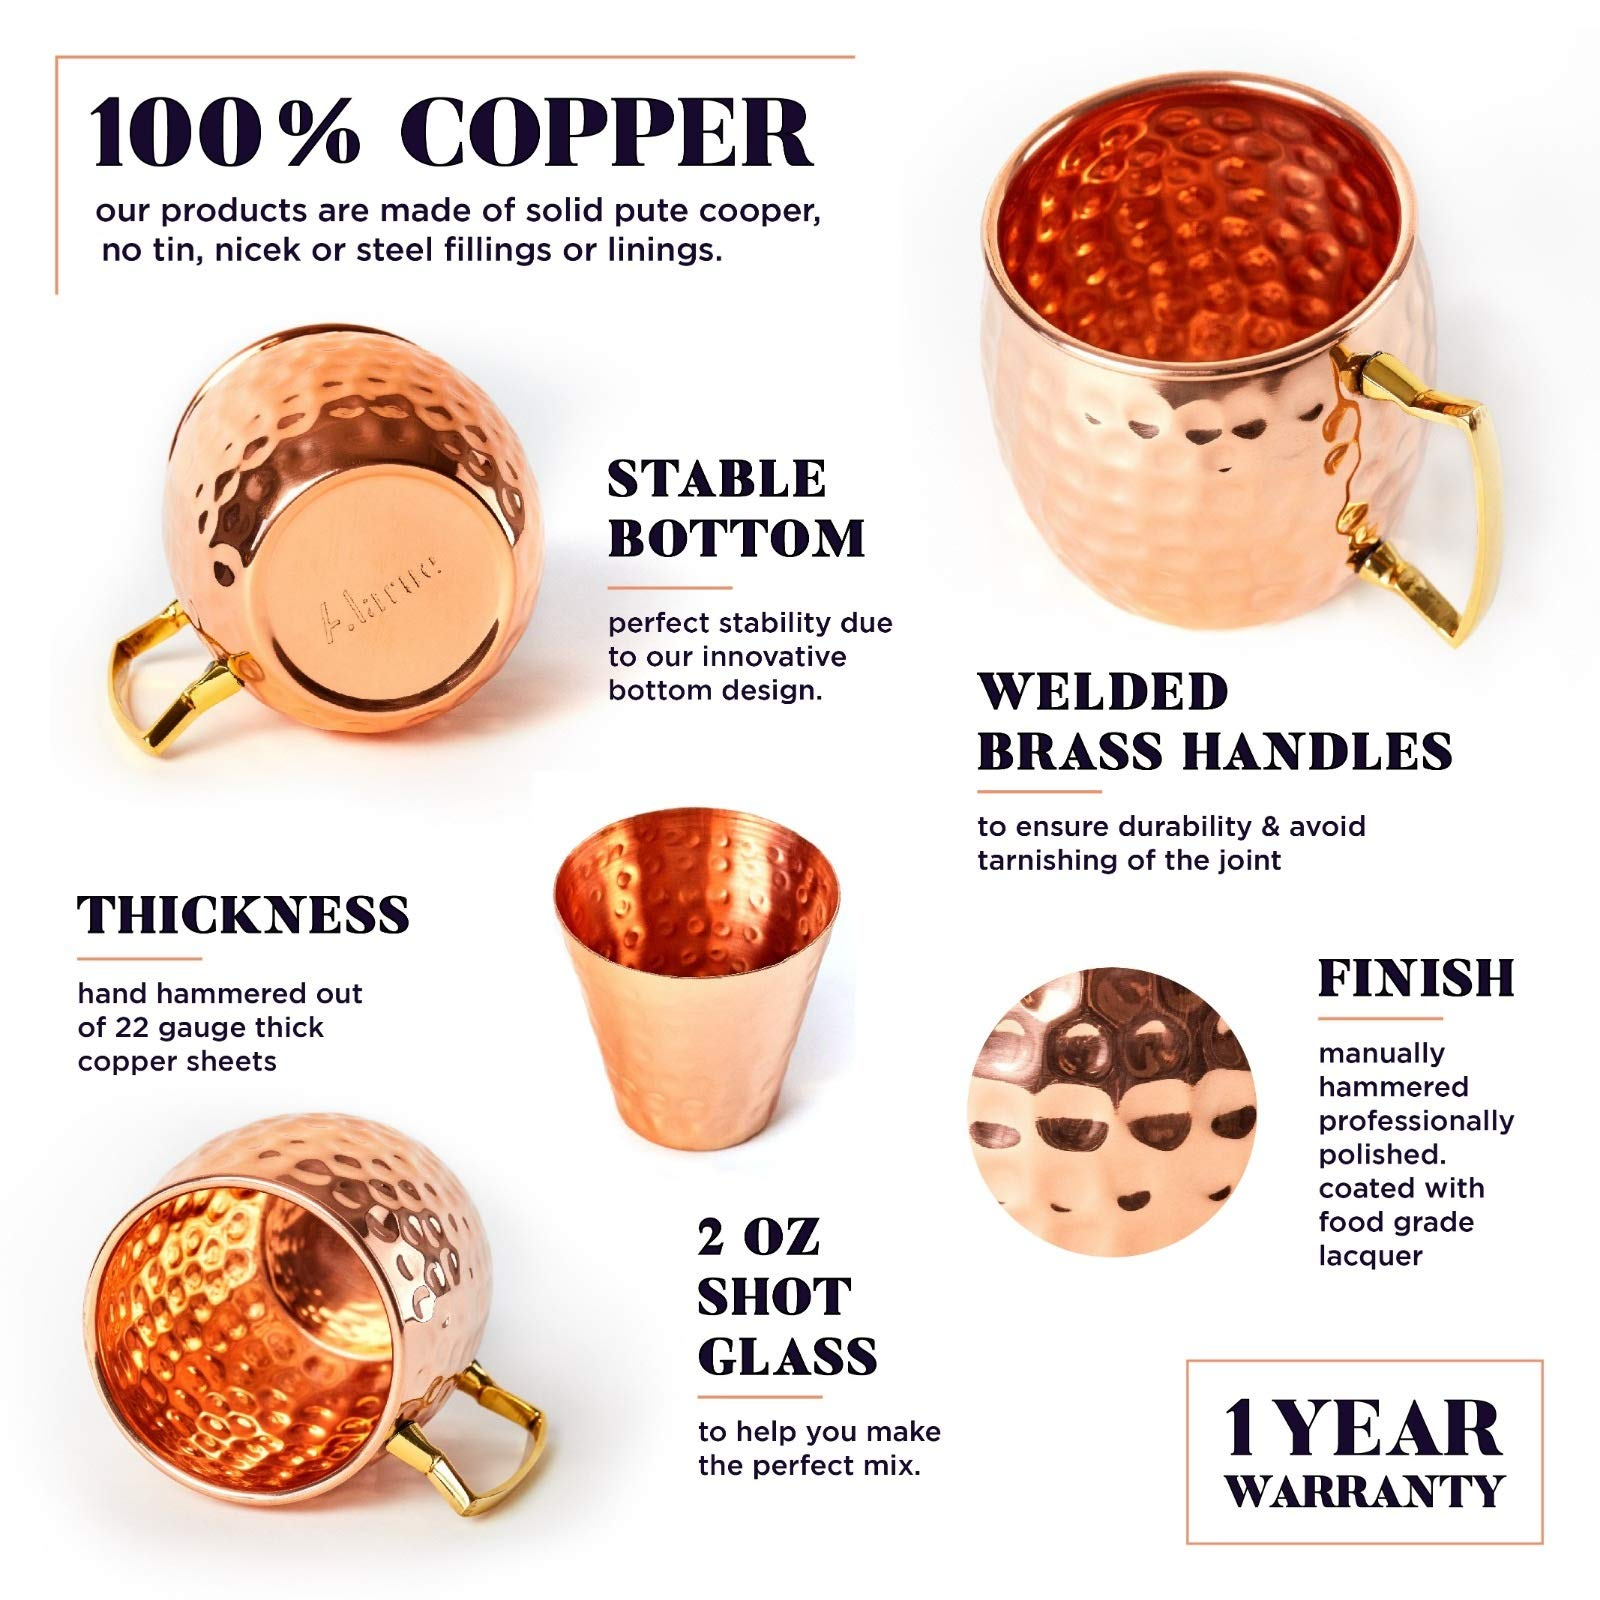 Moscow Mule Copper Mugs Set - 4 Authentic Handcrafted Mugs (16 oz ) with  Shot Glass (2 oz ) - Food Safe Pure Solid Copper Mugs - Gift set with  Recipe